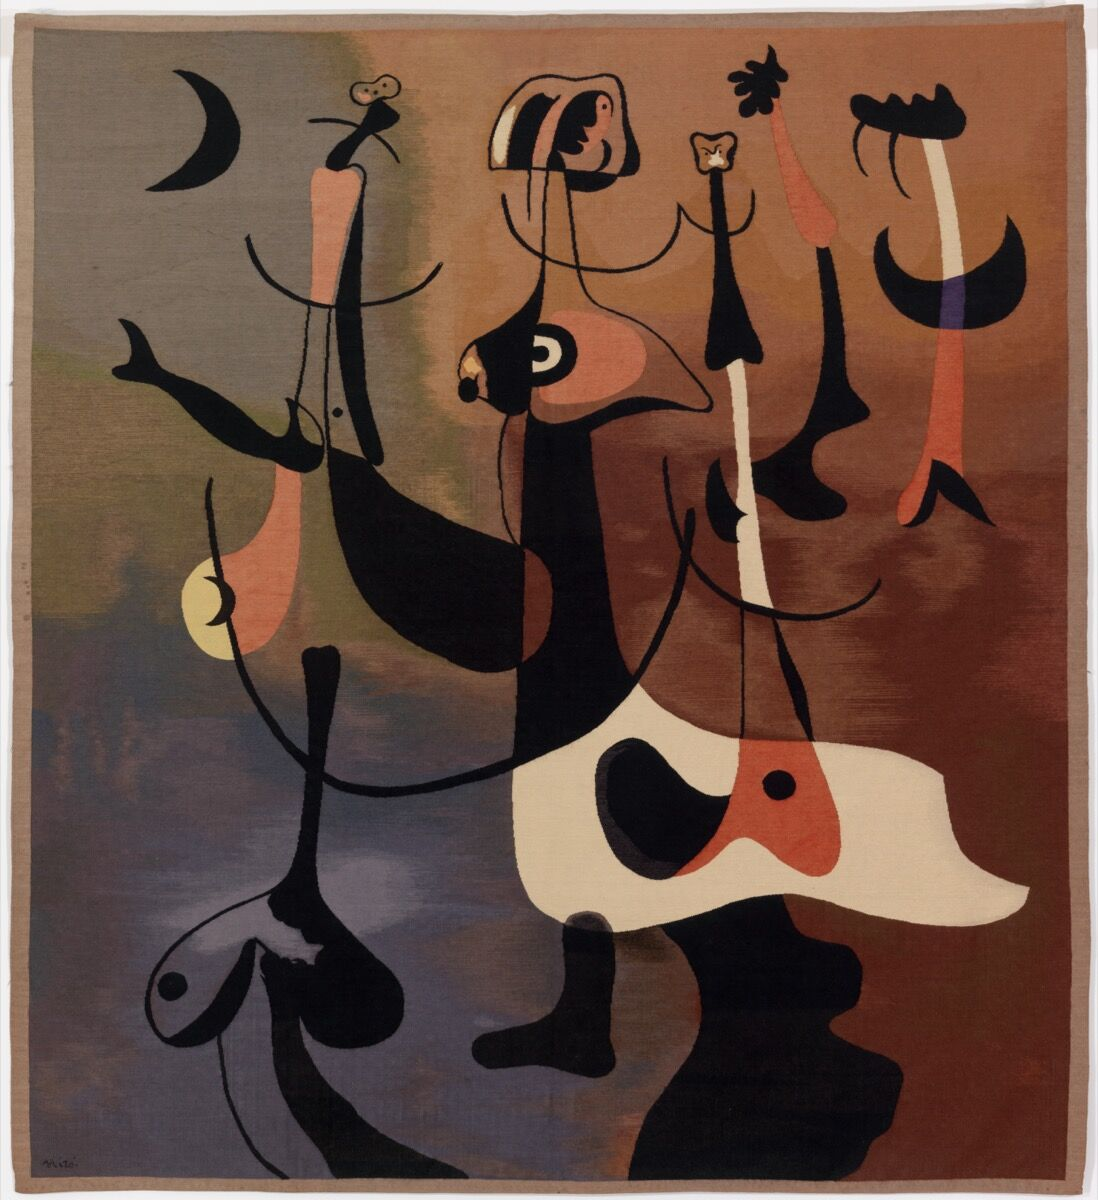 Joan Miró, Rhythmic Figures (Personnages rythmiques) , or Woman and Birds , 1934. Cotton and wool with silk. © Successió Miró / Artists Rights Society (ARS), New York / ADAGP, Paris 2019. Courtesy of the Barnes Foundation, Philadelphia.